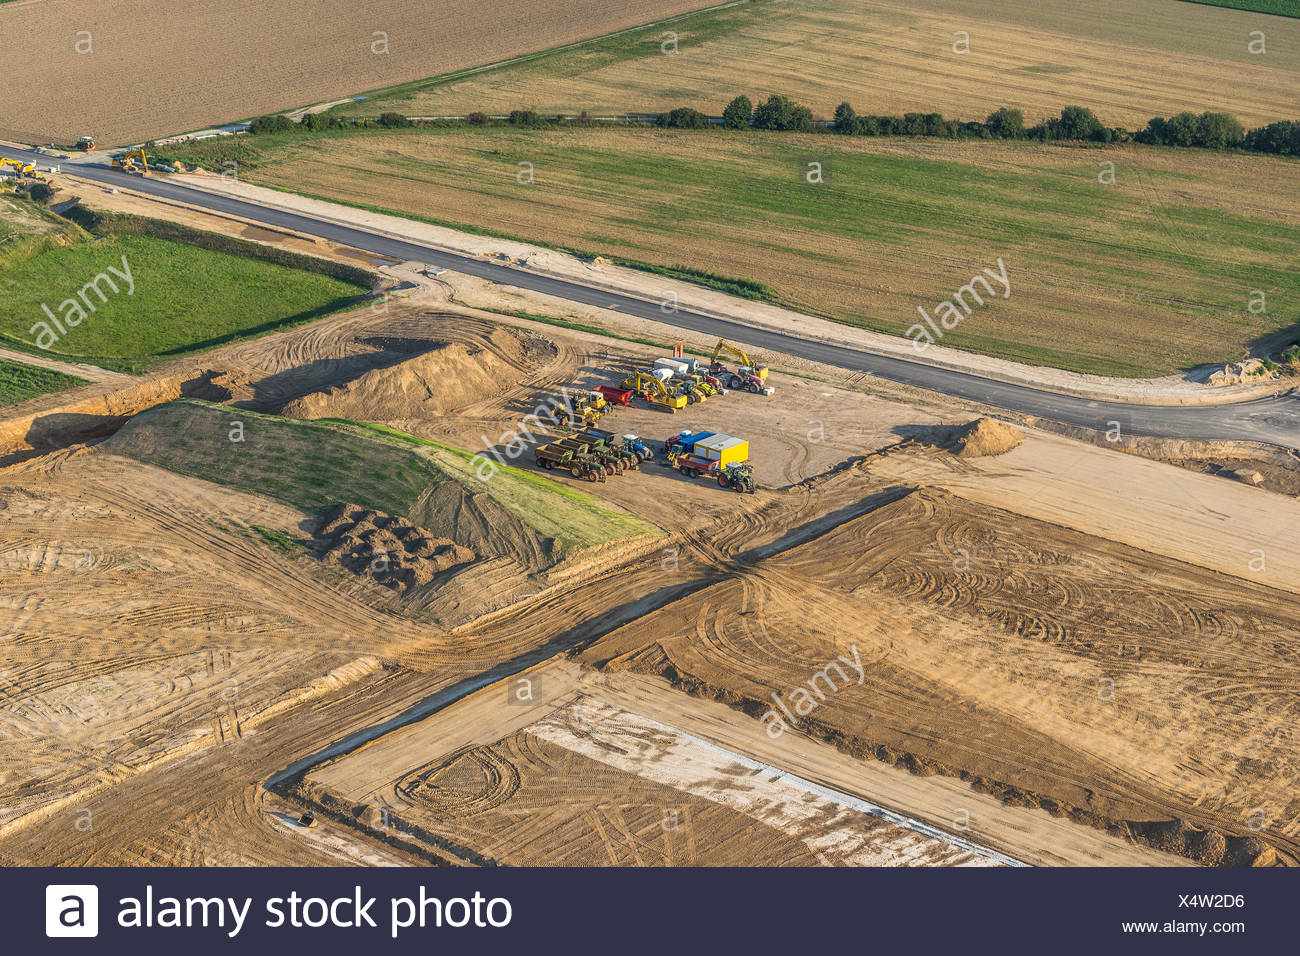 Germany, Hildesheim, arial view of agrarian area - Stock Image